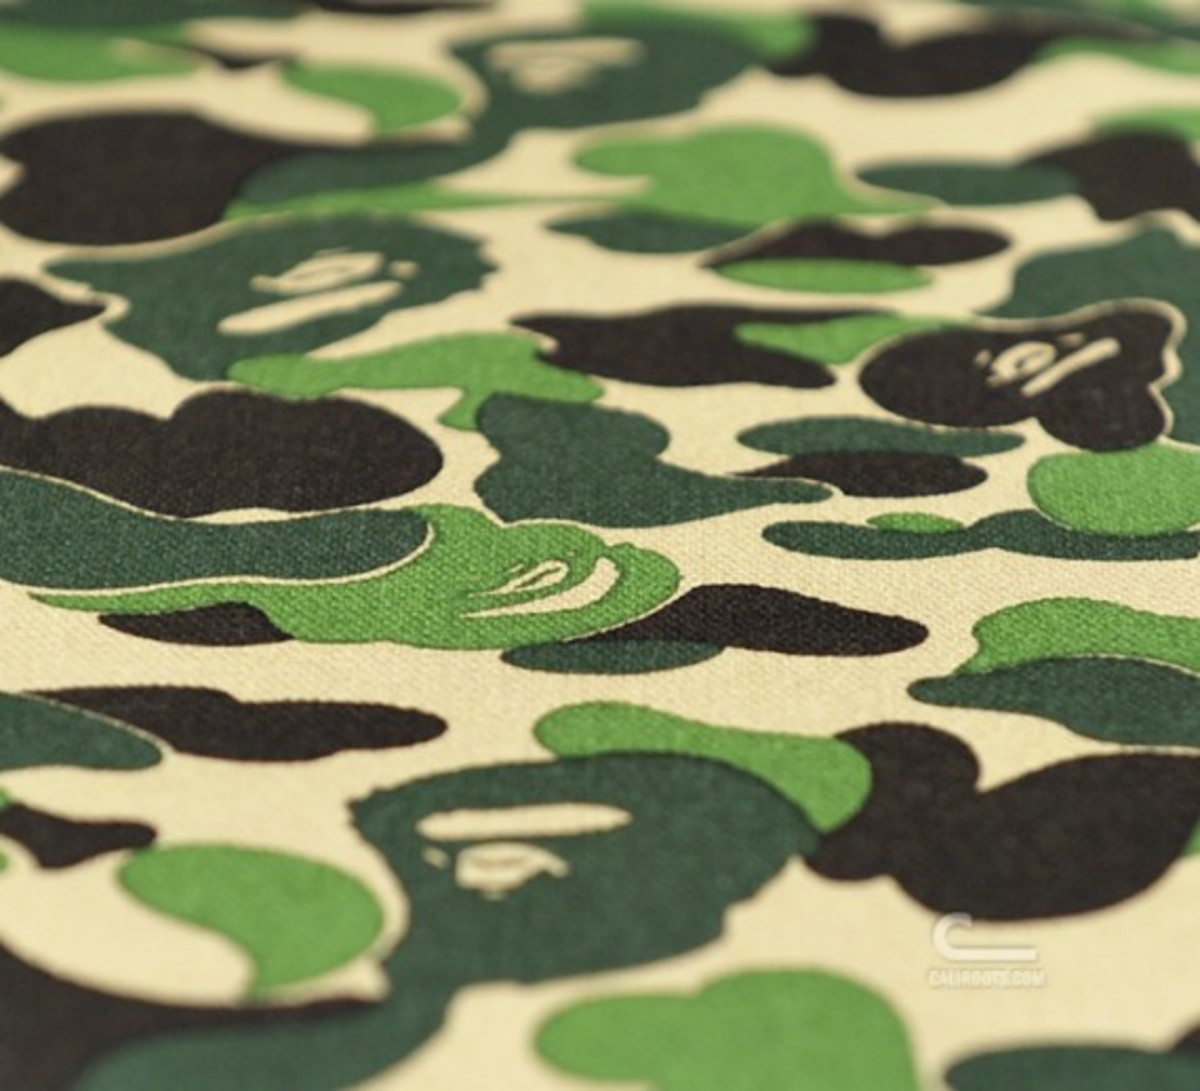 a-bathing-ape-medicom-toy-karimoku-bape-camo-furniture-17